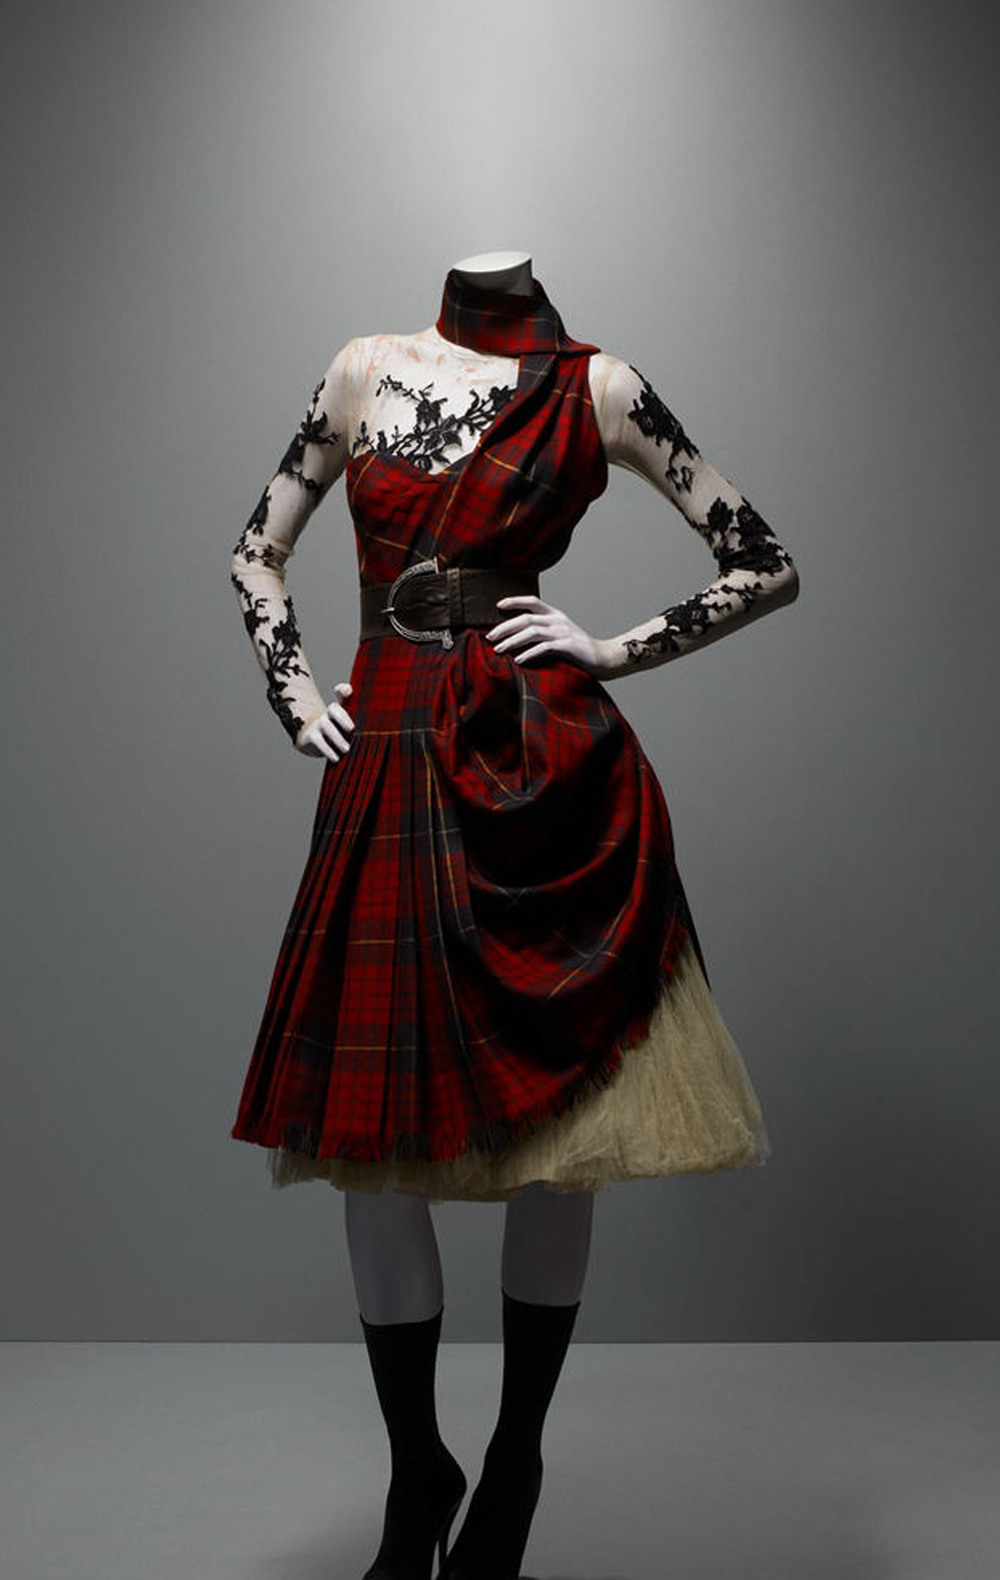 Sybarite-Architects-Alexander-McQueen-Savage-Beauty-V-and-A-Tartan-Scottish-Heritage-A-romantic-nationalism.jpg